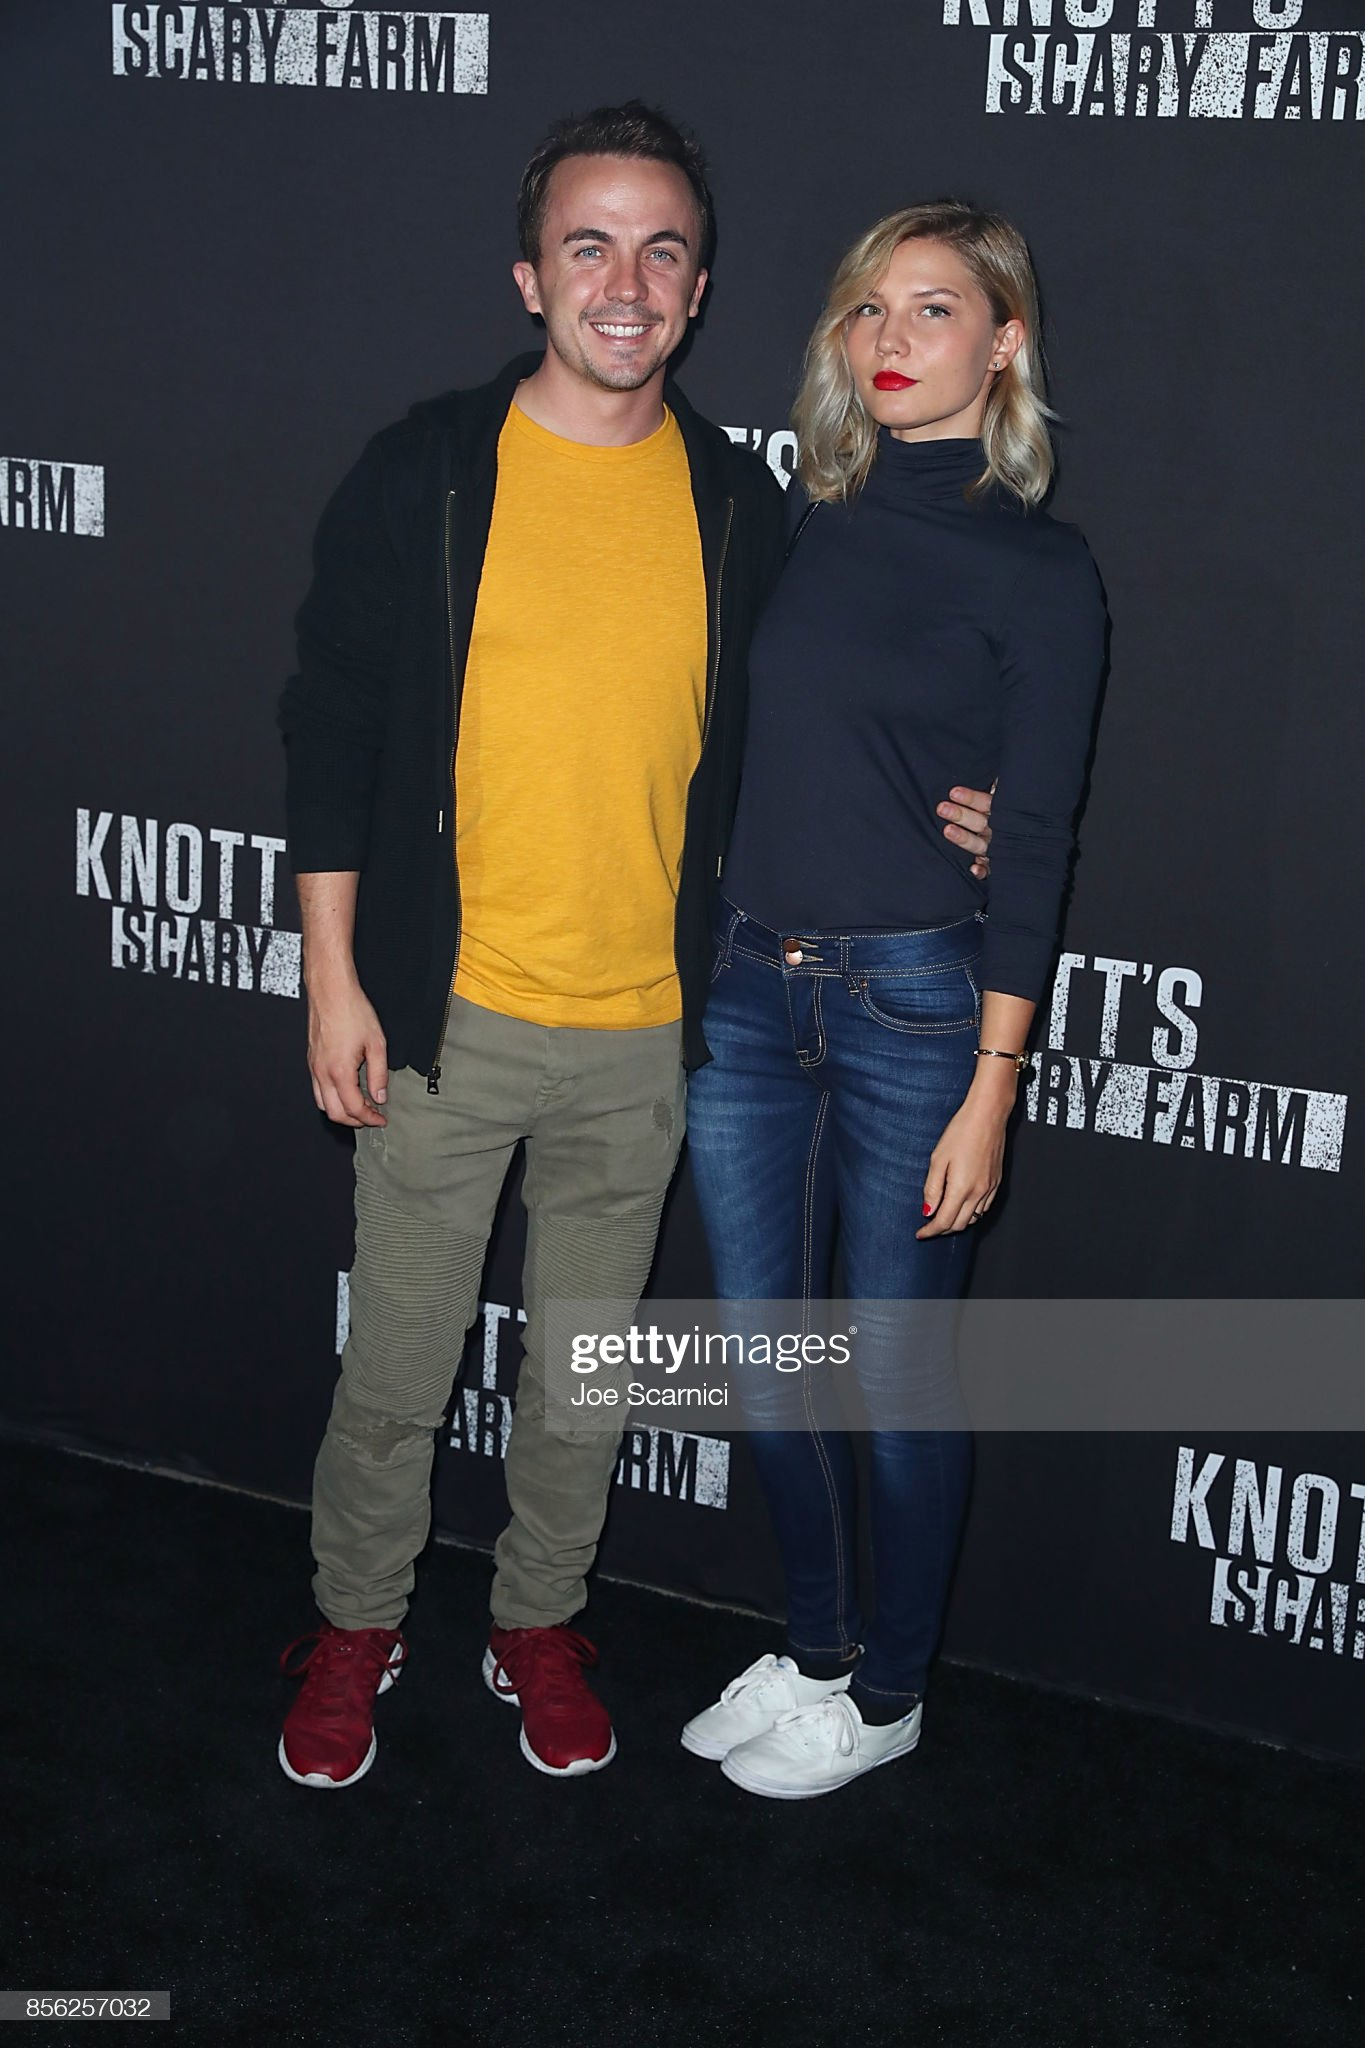 ¿Cuánto mide Frankie Muniz? - Altura - Real height Frankie-muniz-and-paige-price-arrive-at-knotts-scary-farm-and-night-picture-id856257032?s=2048x2048